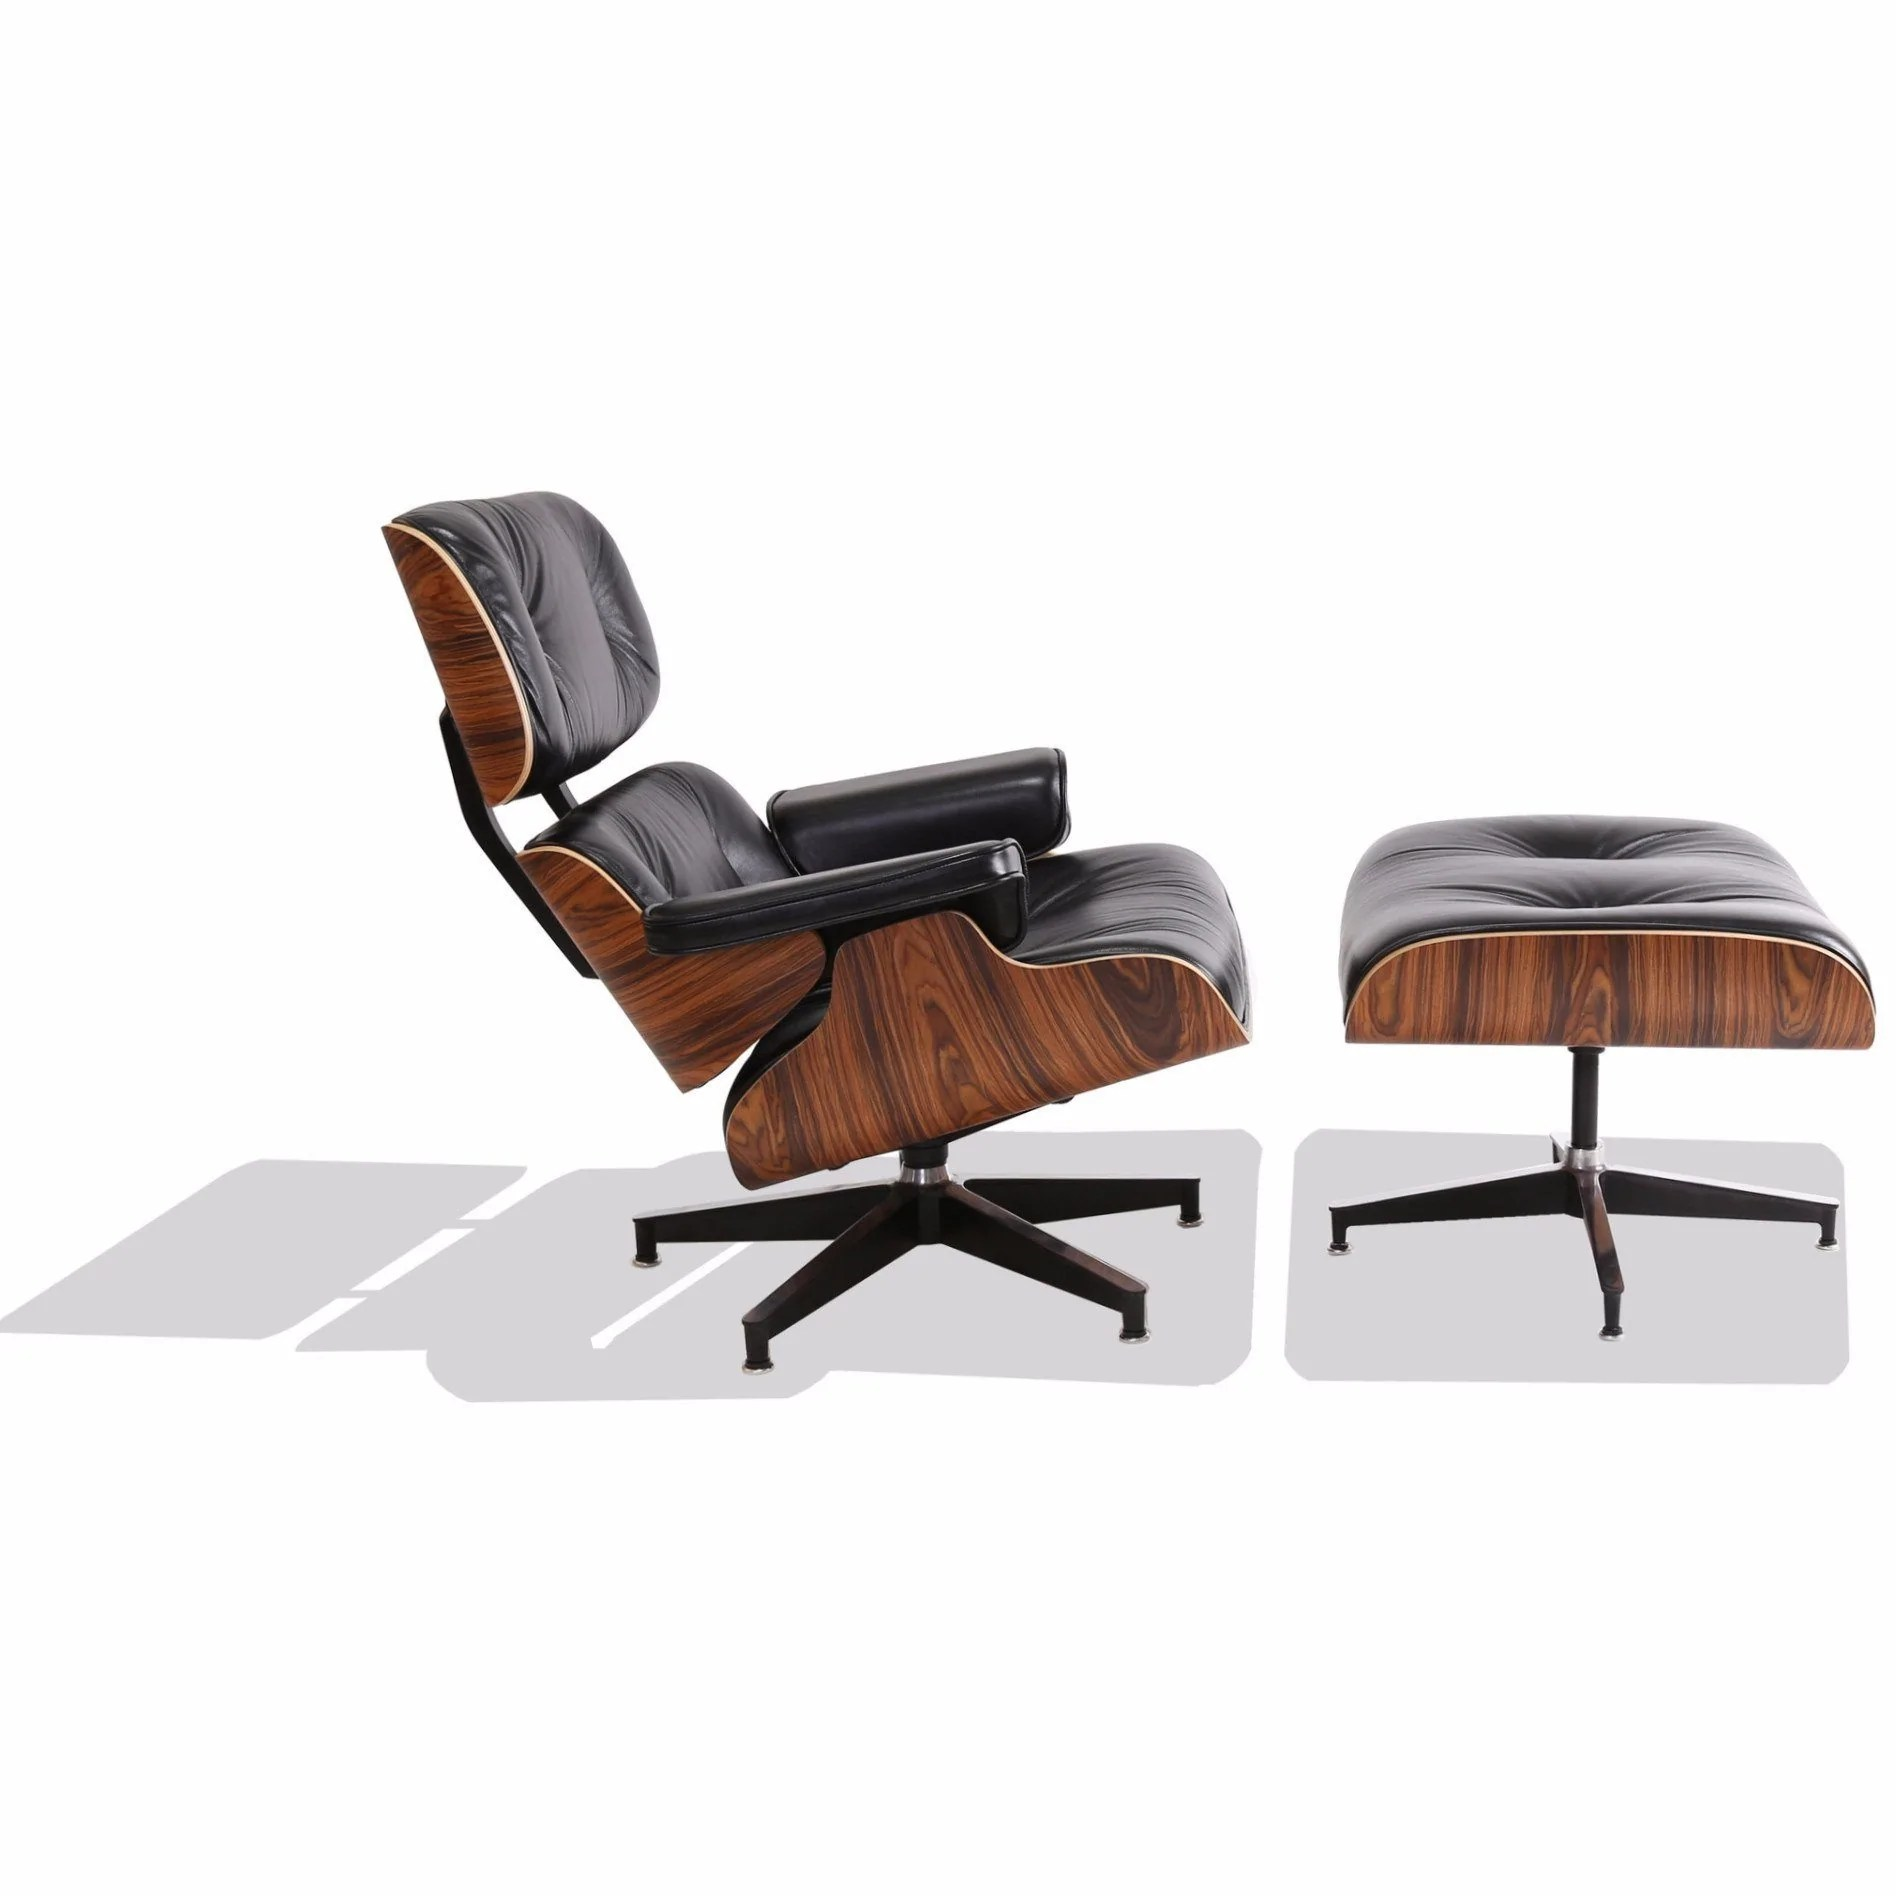 Bettsessel Interio Eames Chair Types